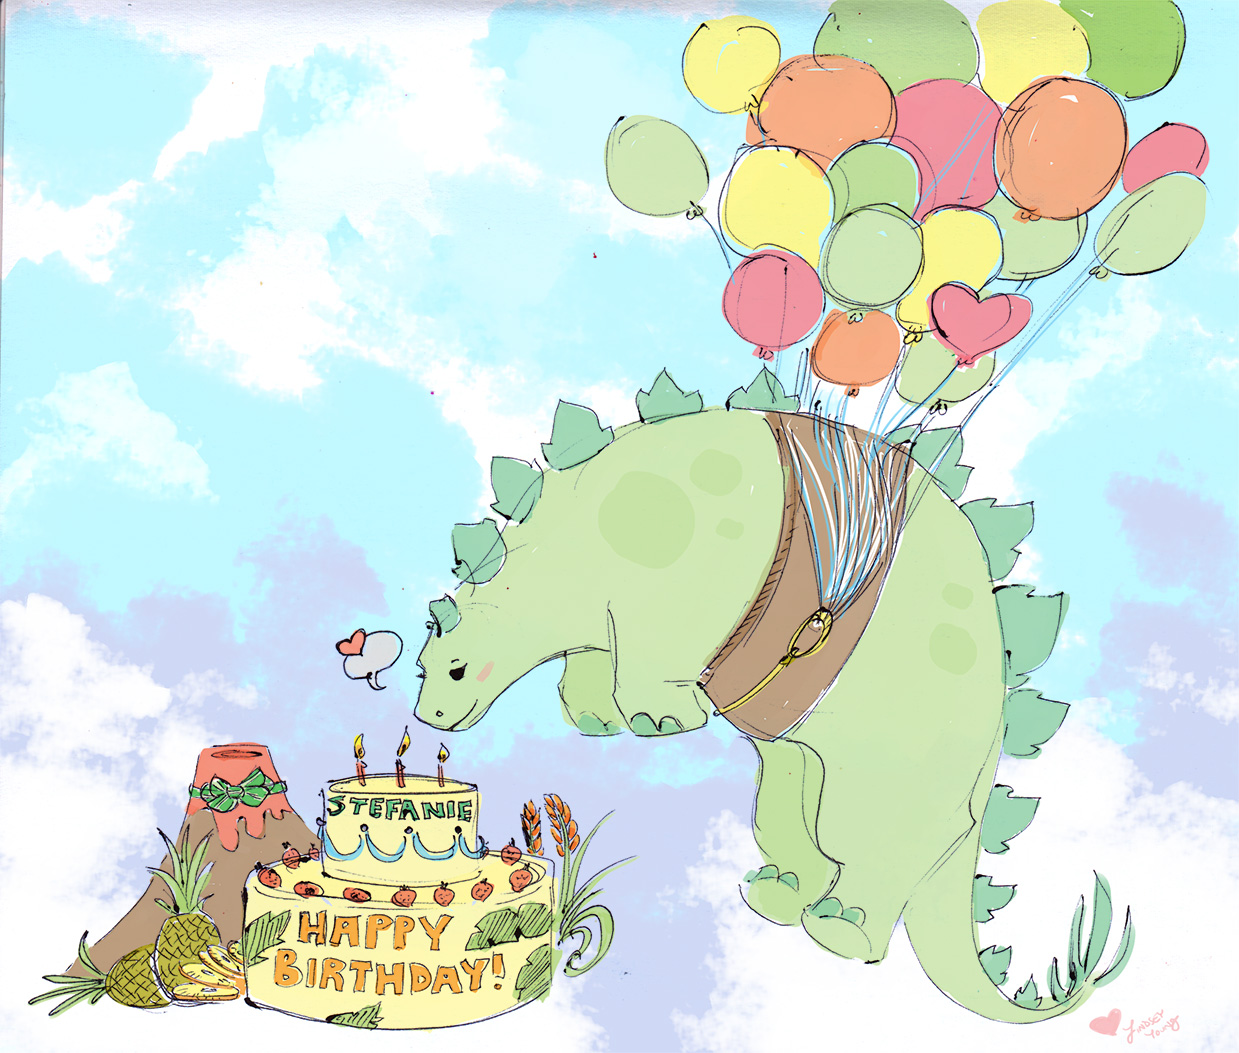 An illustration in a simple, hand-drawn style showing a stegasaurus, a tiny volcano, and a birthday cake. The stegasaurus is being lifted into the air by many colorful balloons.